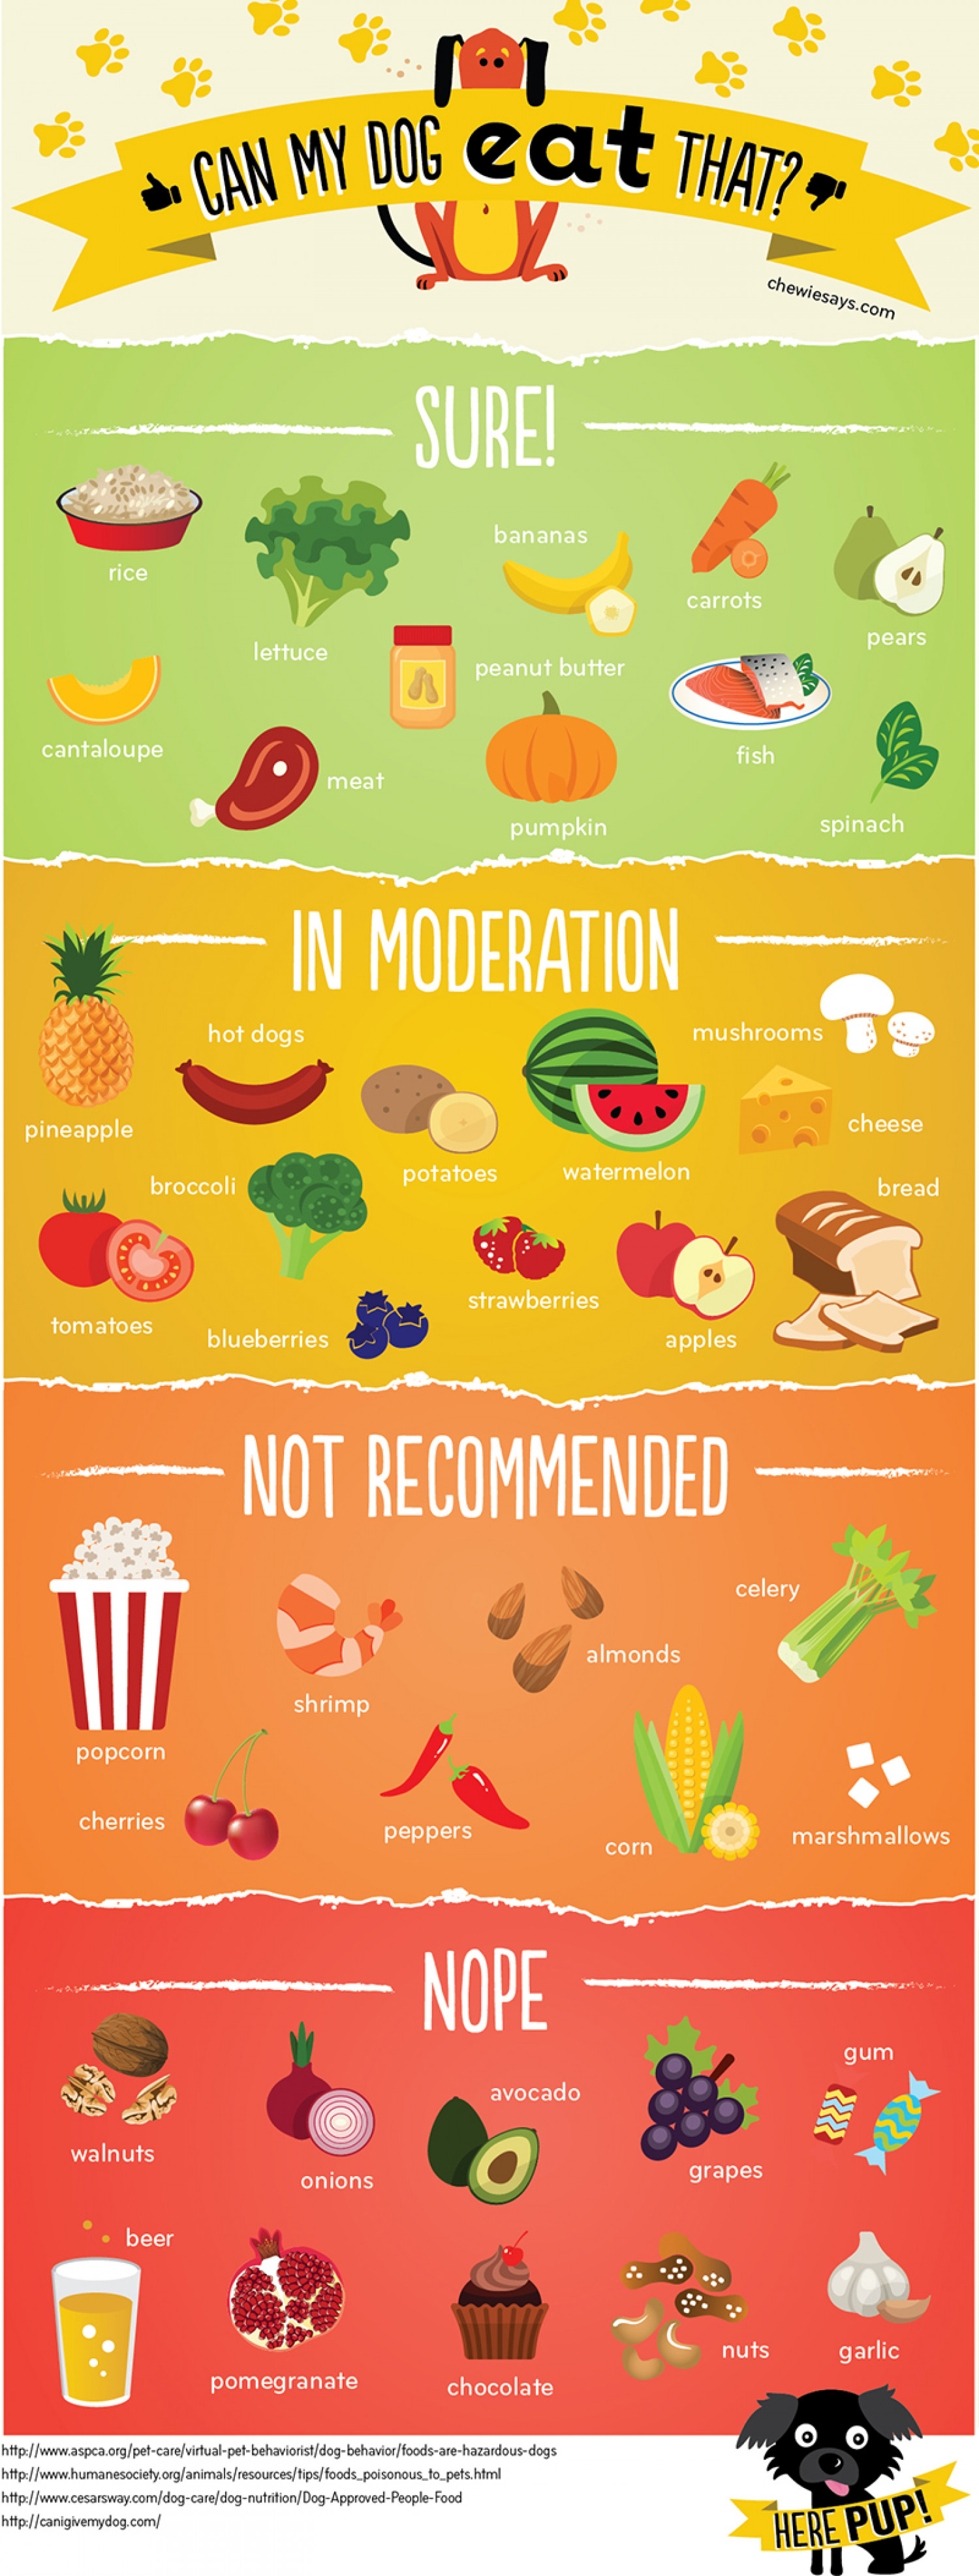 Cant My Dog Eat That? Infographic